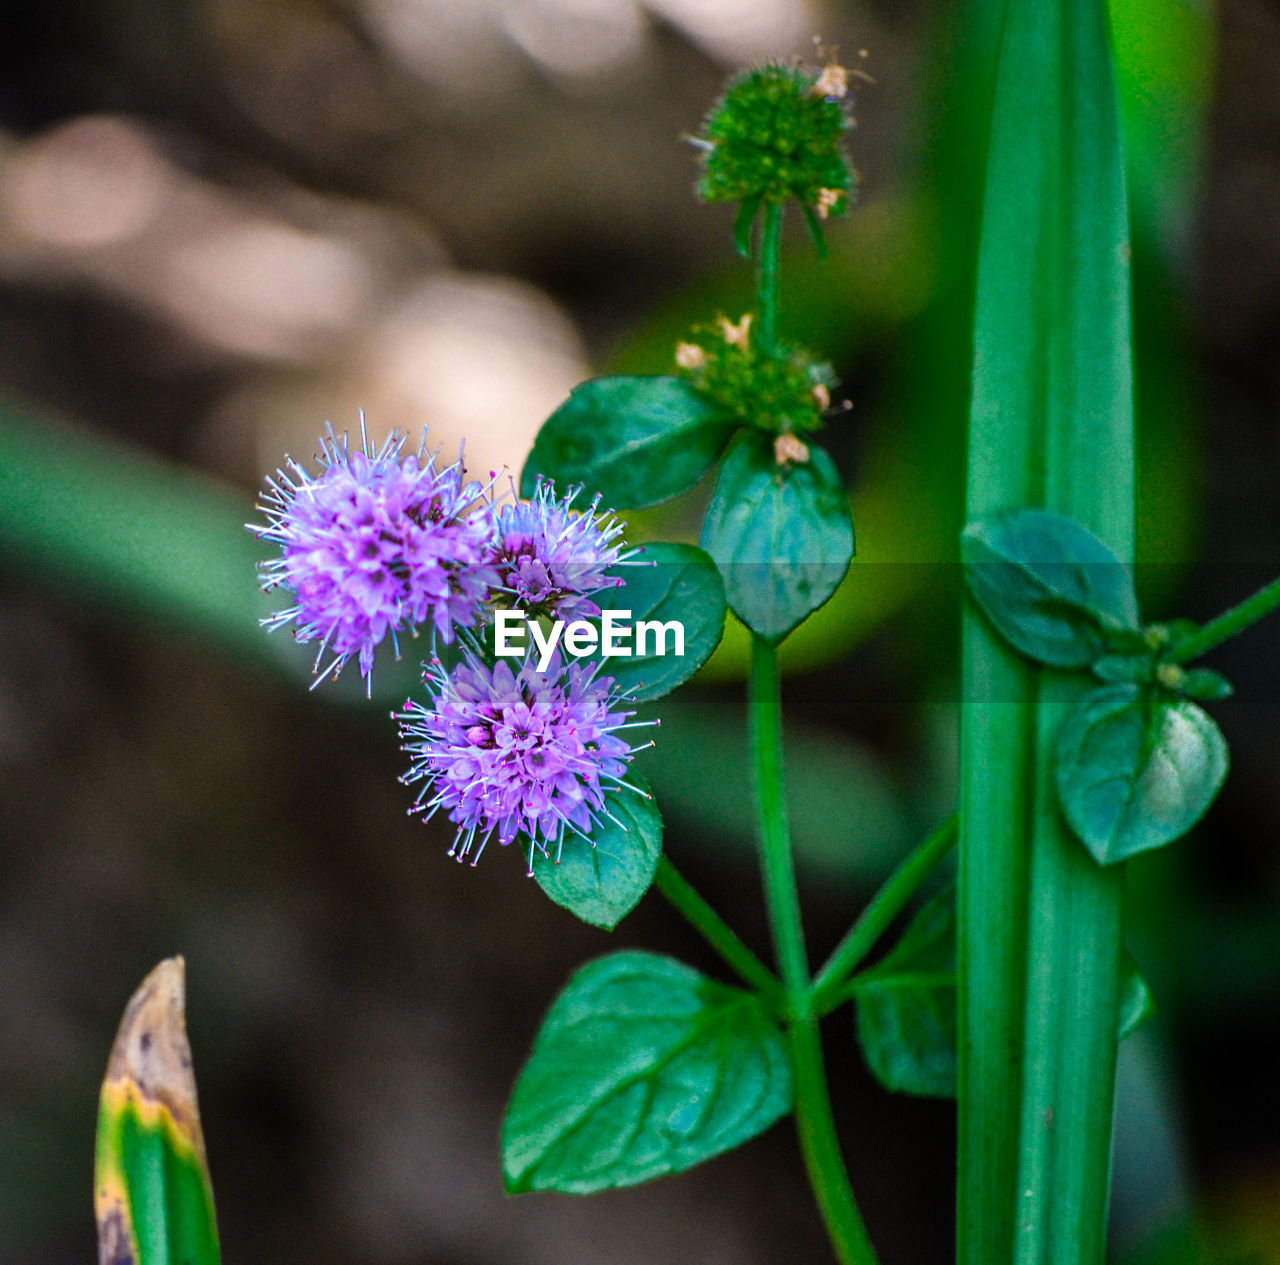 flower, flowering plant, plant, growth, freshness, beauty in nature, vulnerability, fragility, close-up, plant part, petal, flower head, leaf, inflorescence, focus on foreground, purple, green color, nature, day, no people, outdoors